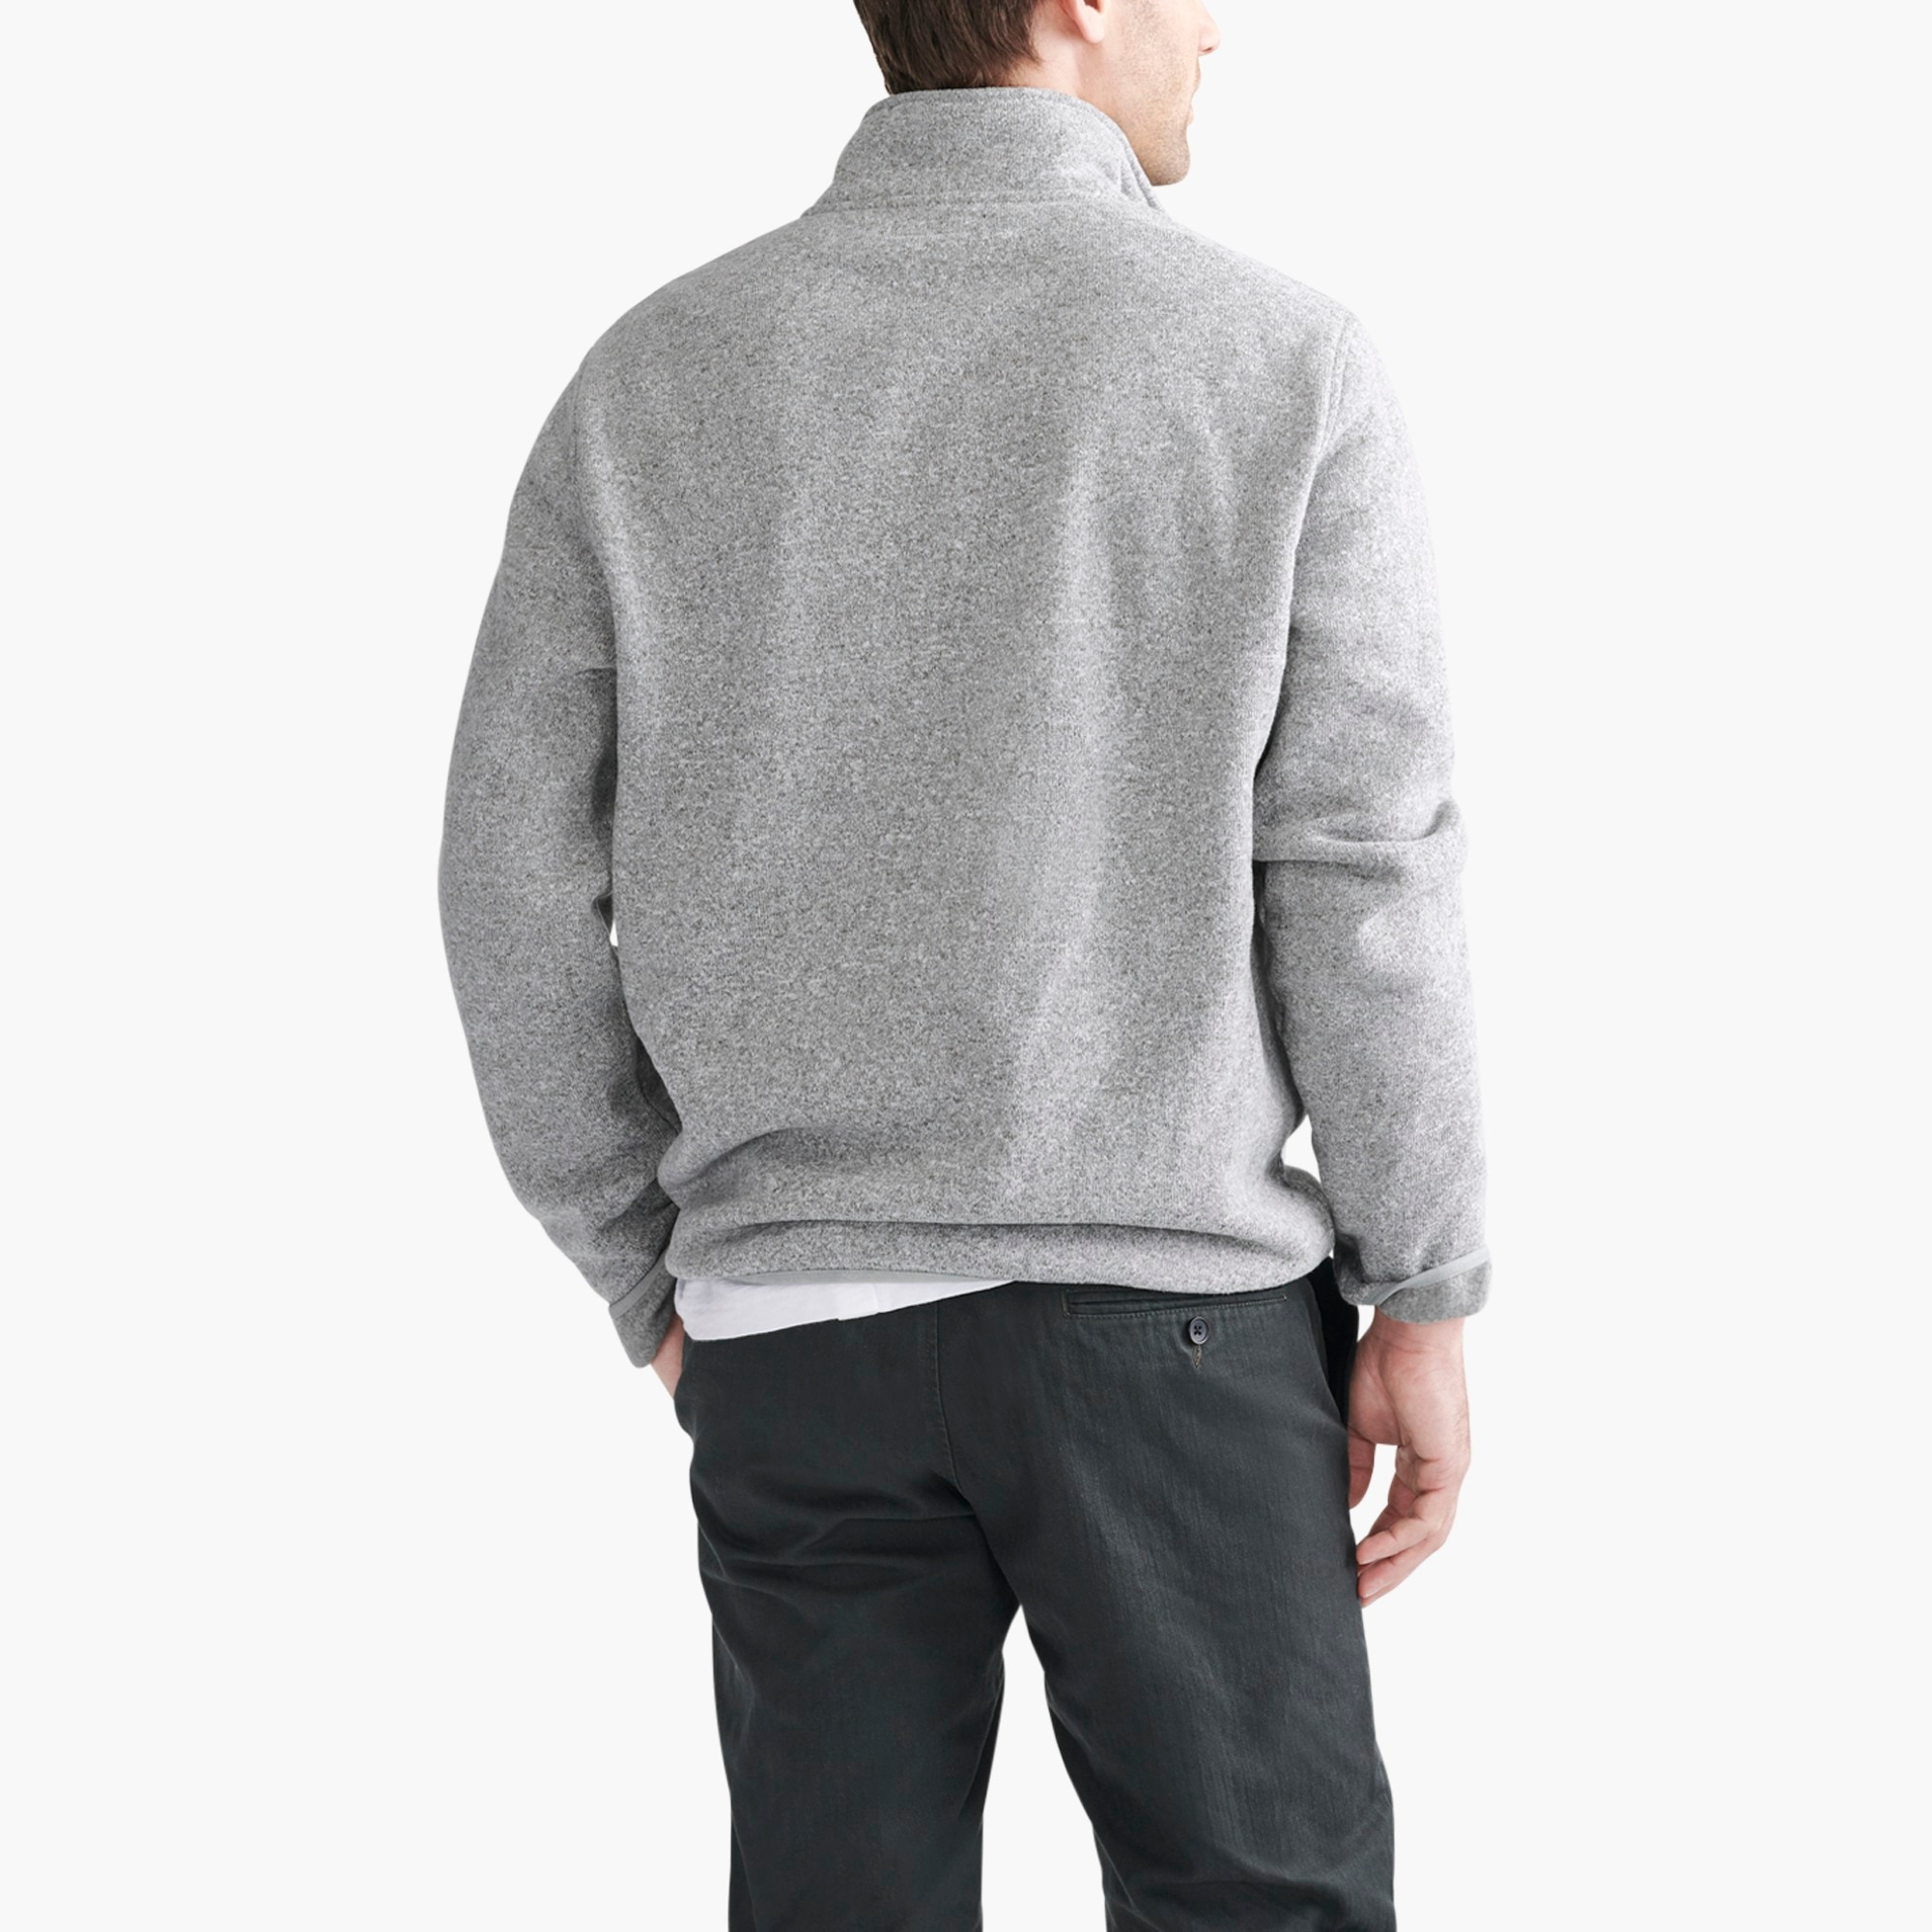 Image 3 for Sweater fleece half-zip